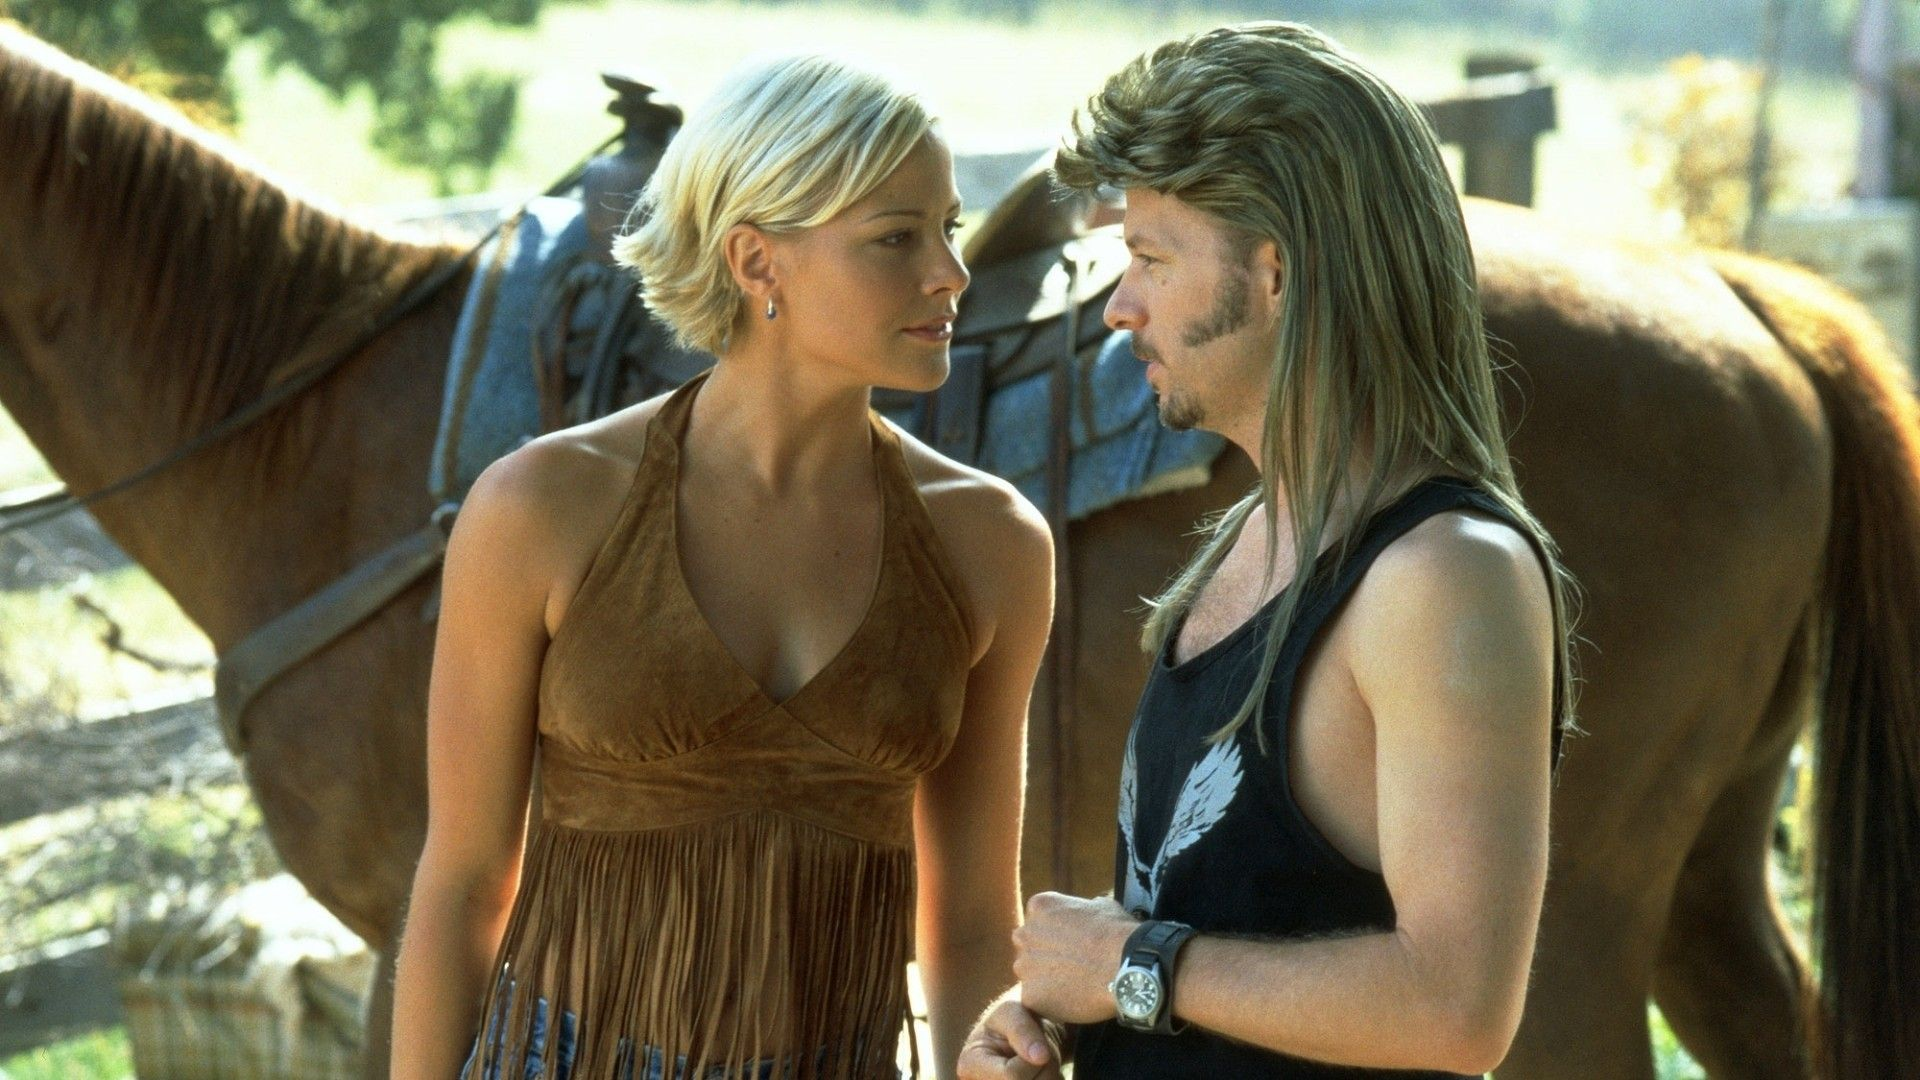 Brittany Daniel Joe Dirt Haircut 41388 Investingbb